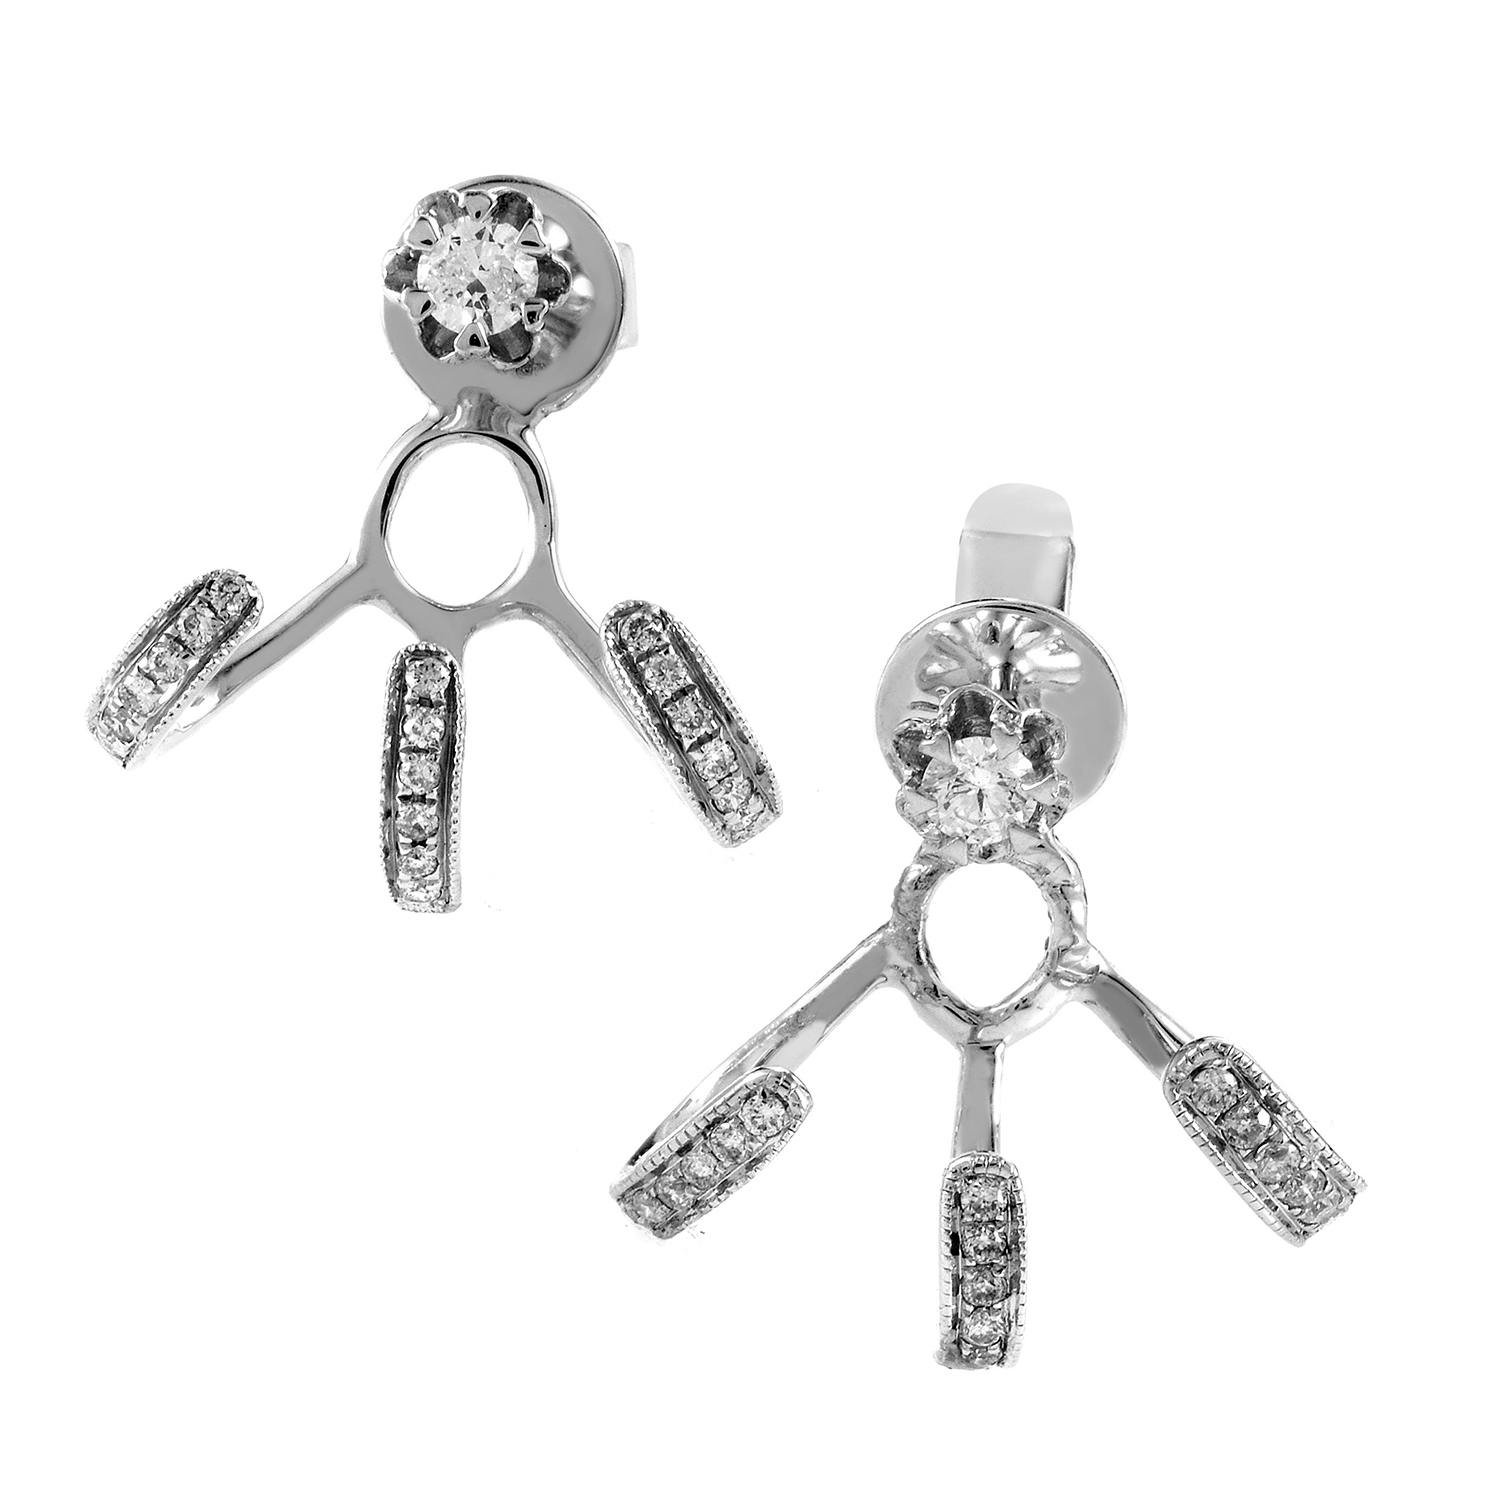 18K White Gold Diamond Earrings SE65161RBZ